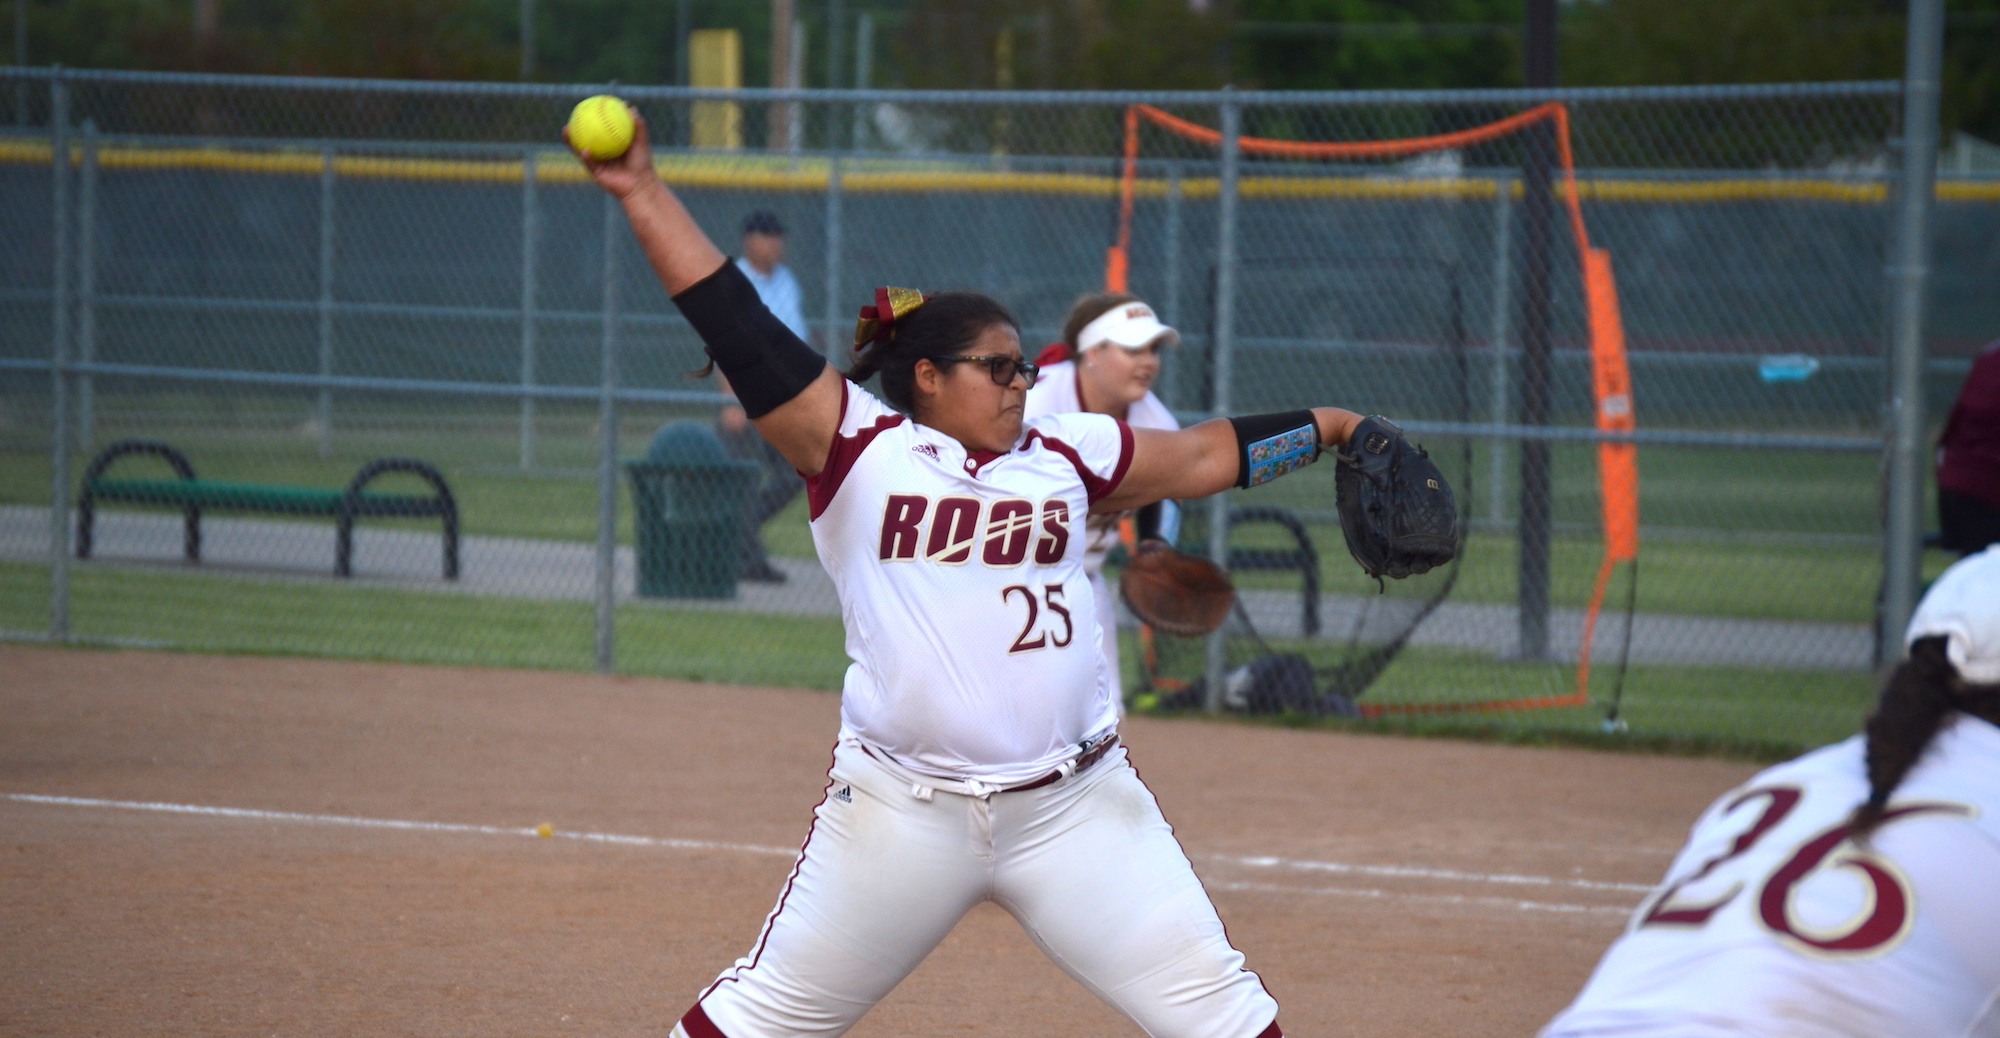 Herrera Named SCAC Co-Pitcher of the Week